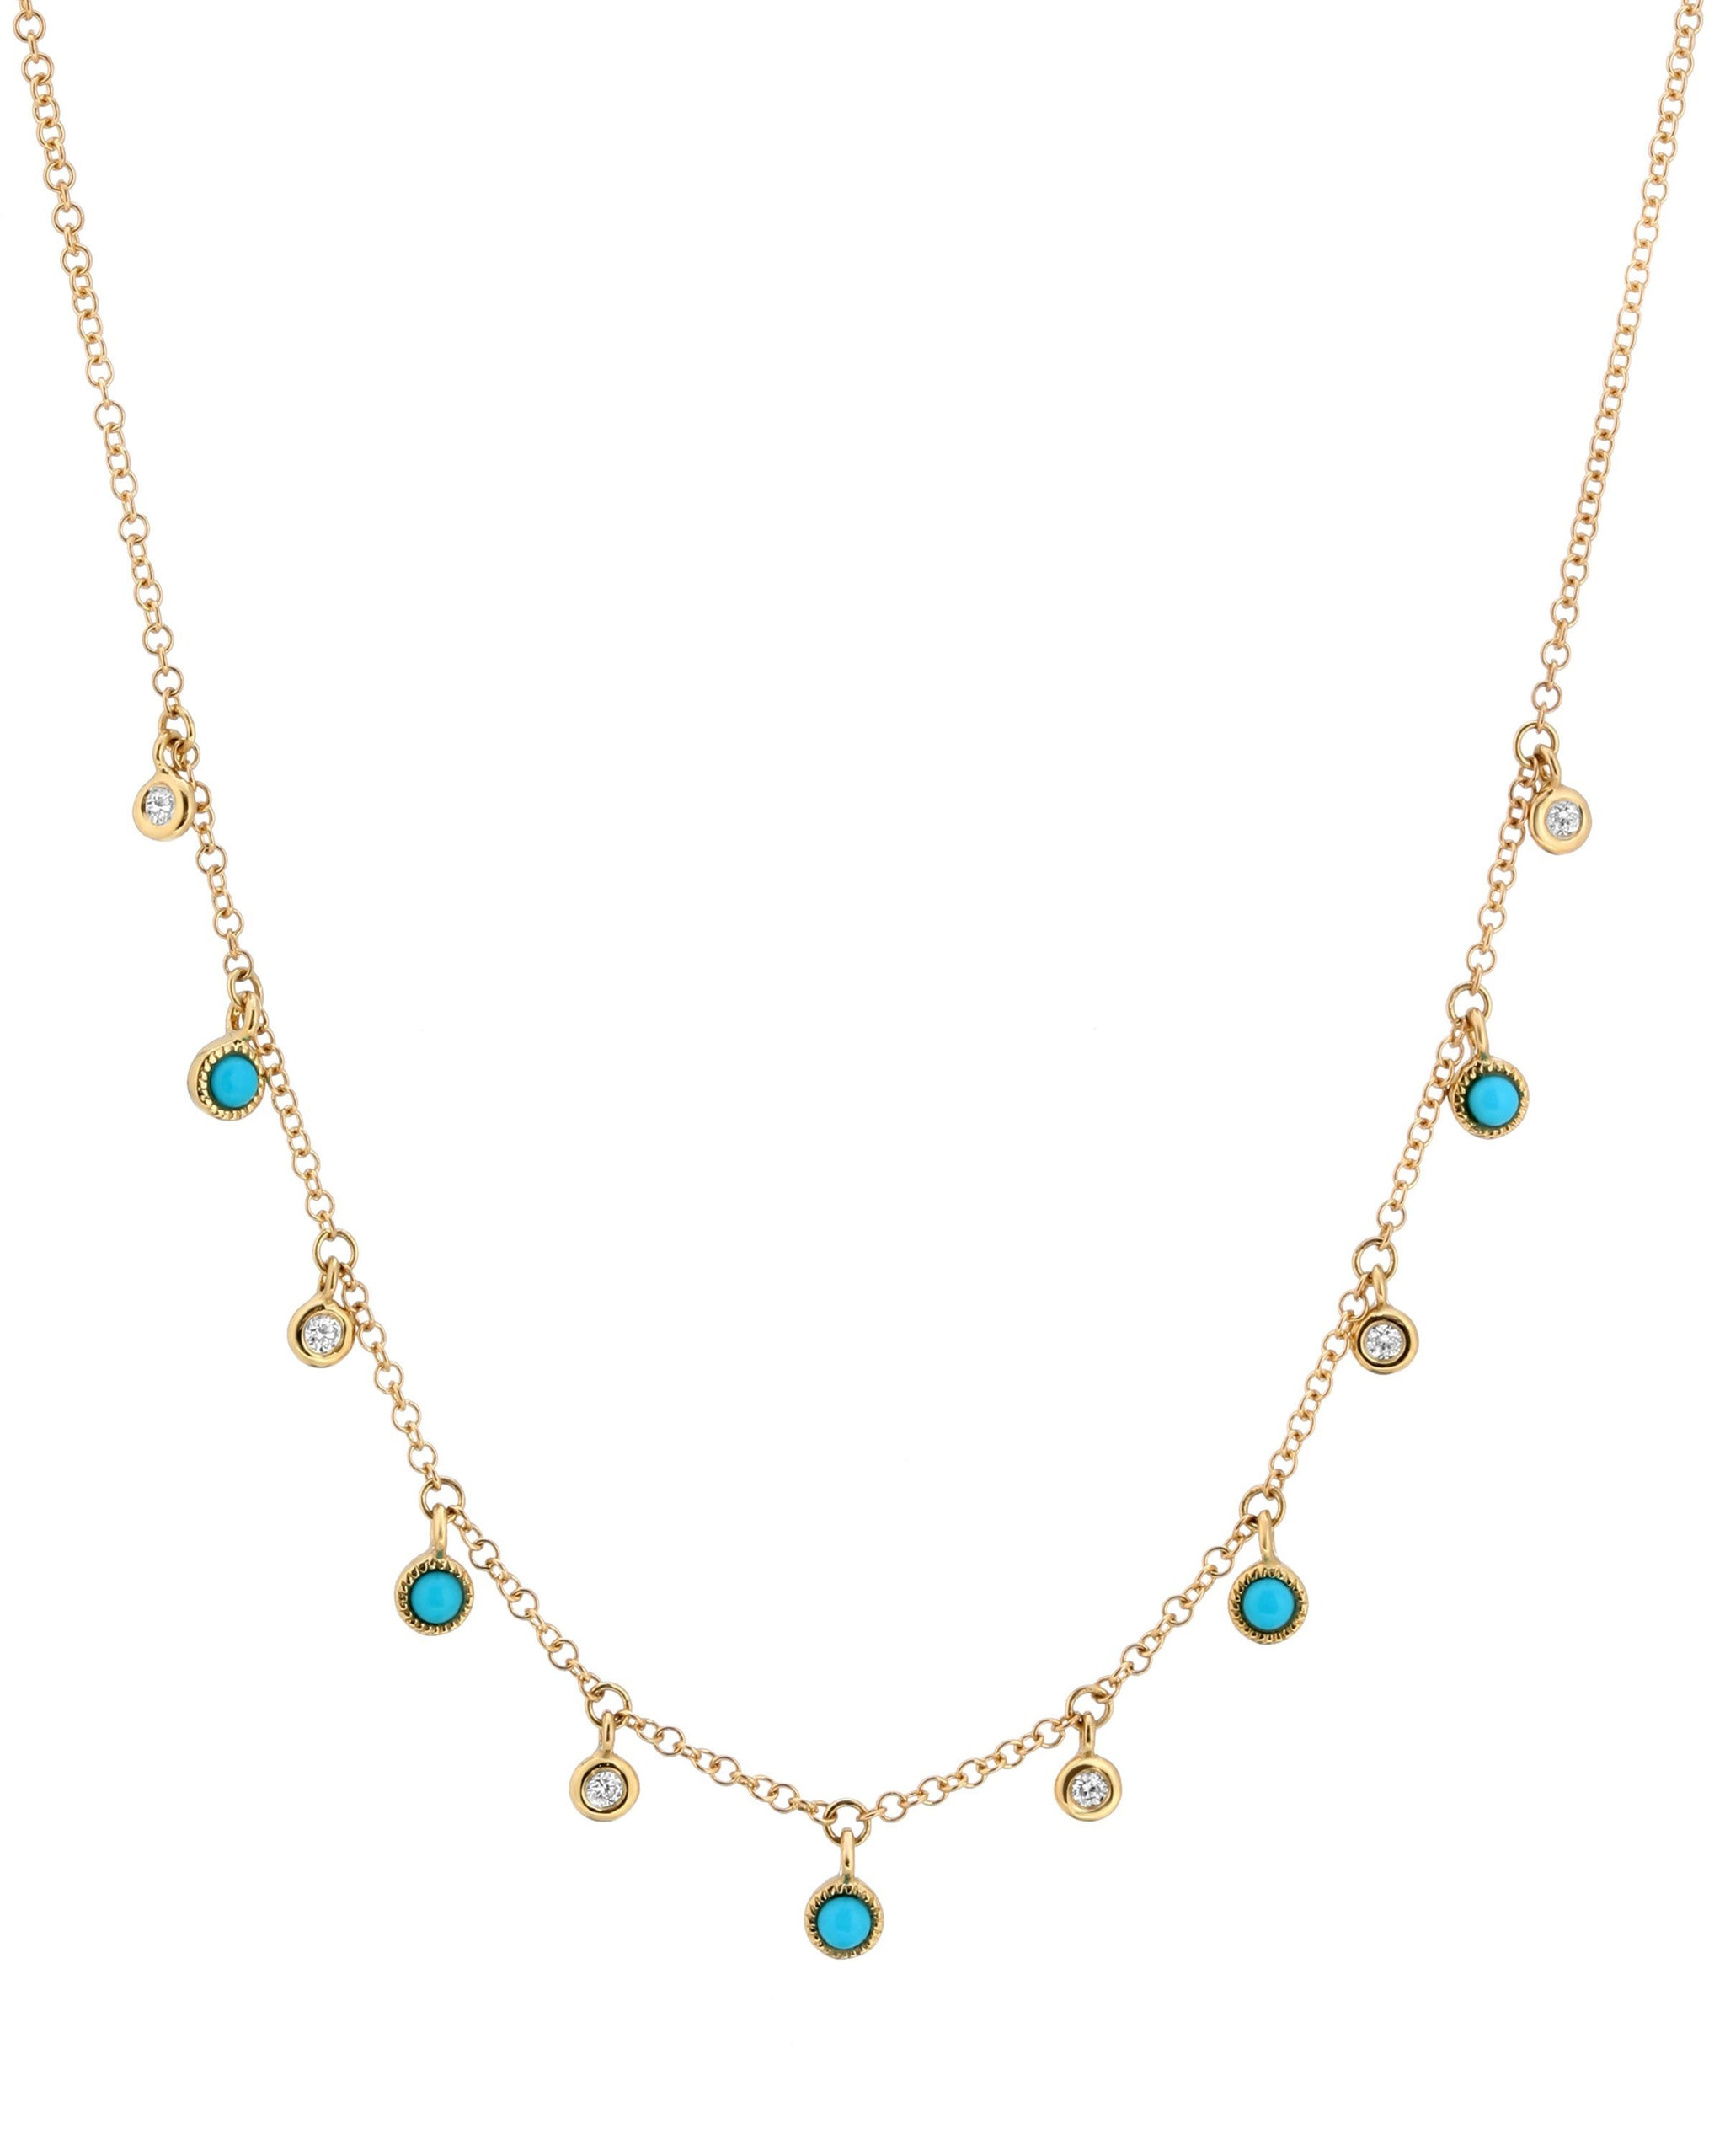 WYLDE NECKLACE - TURQUOISE + TOBACCO